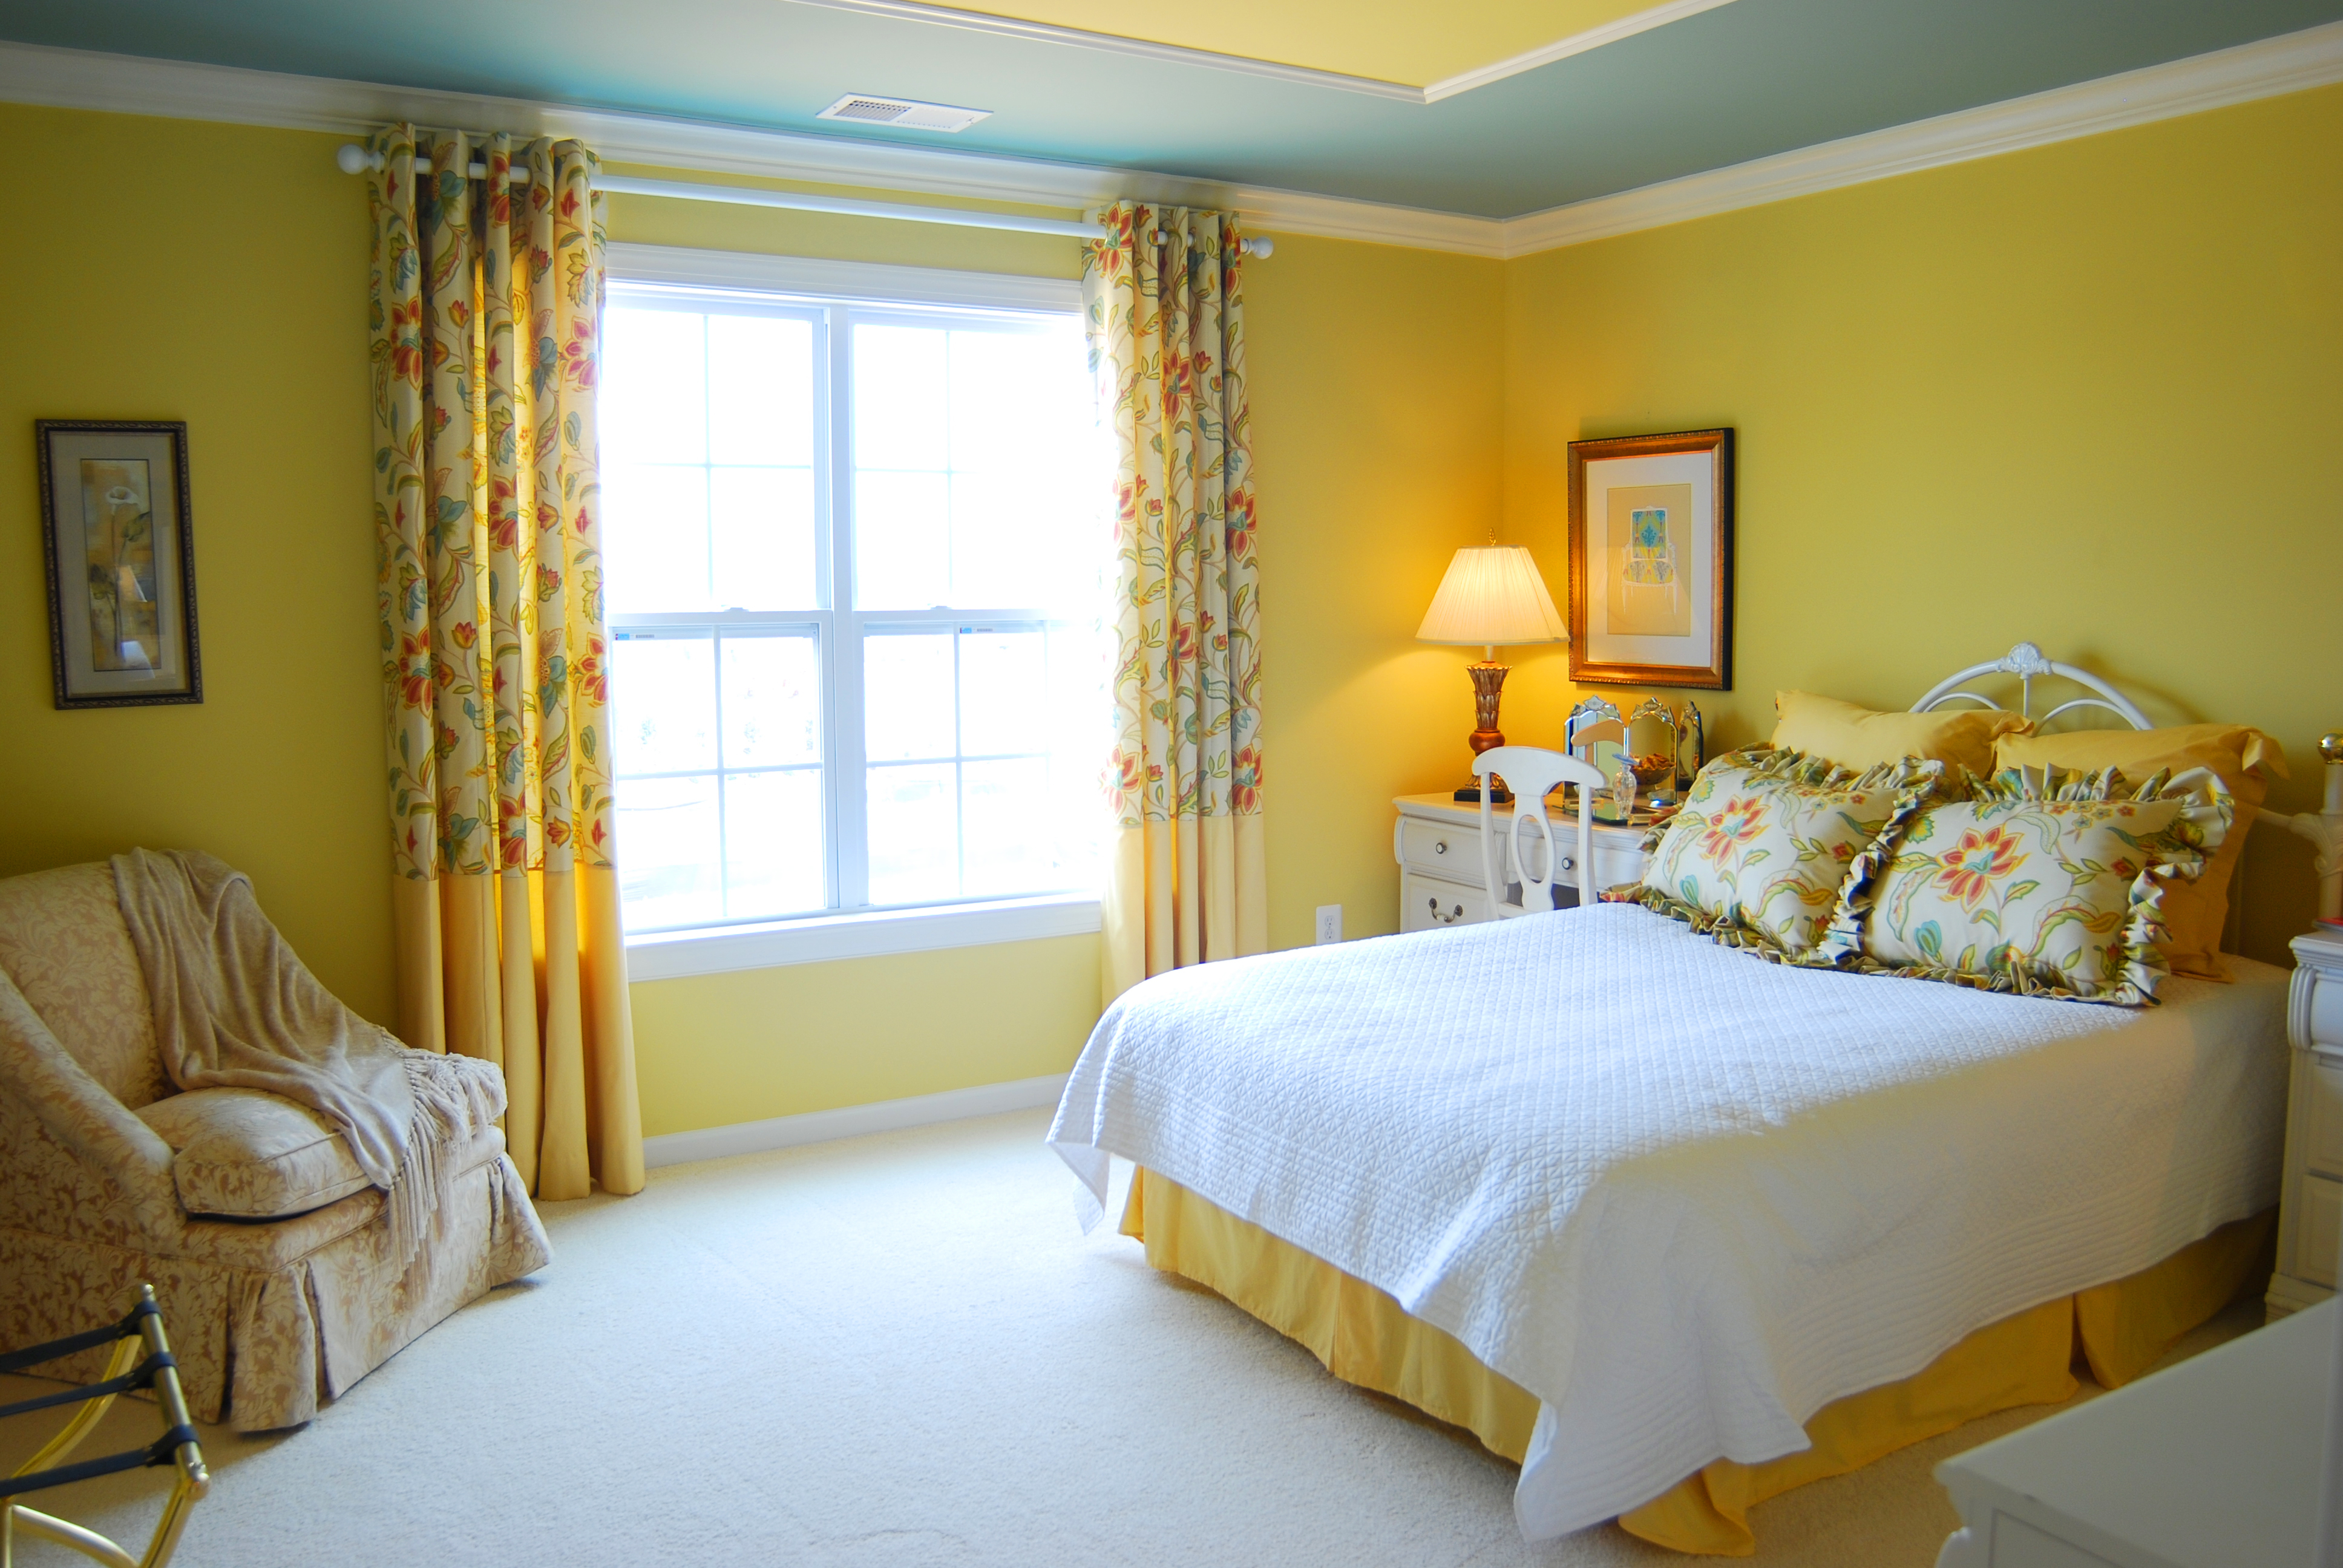 Yellow Wall Bedroom Decor Mark Cooper Research – Yellow Walls in Bedroom